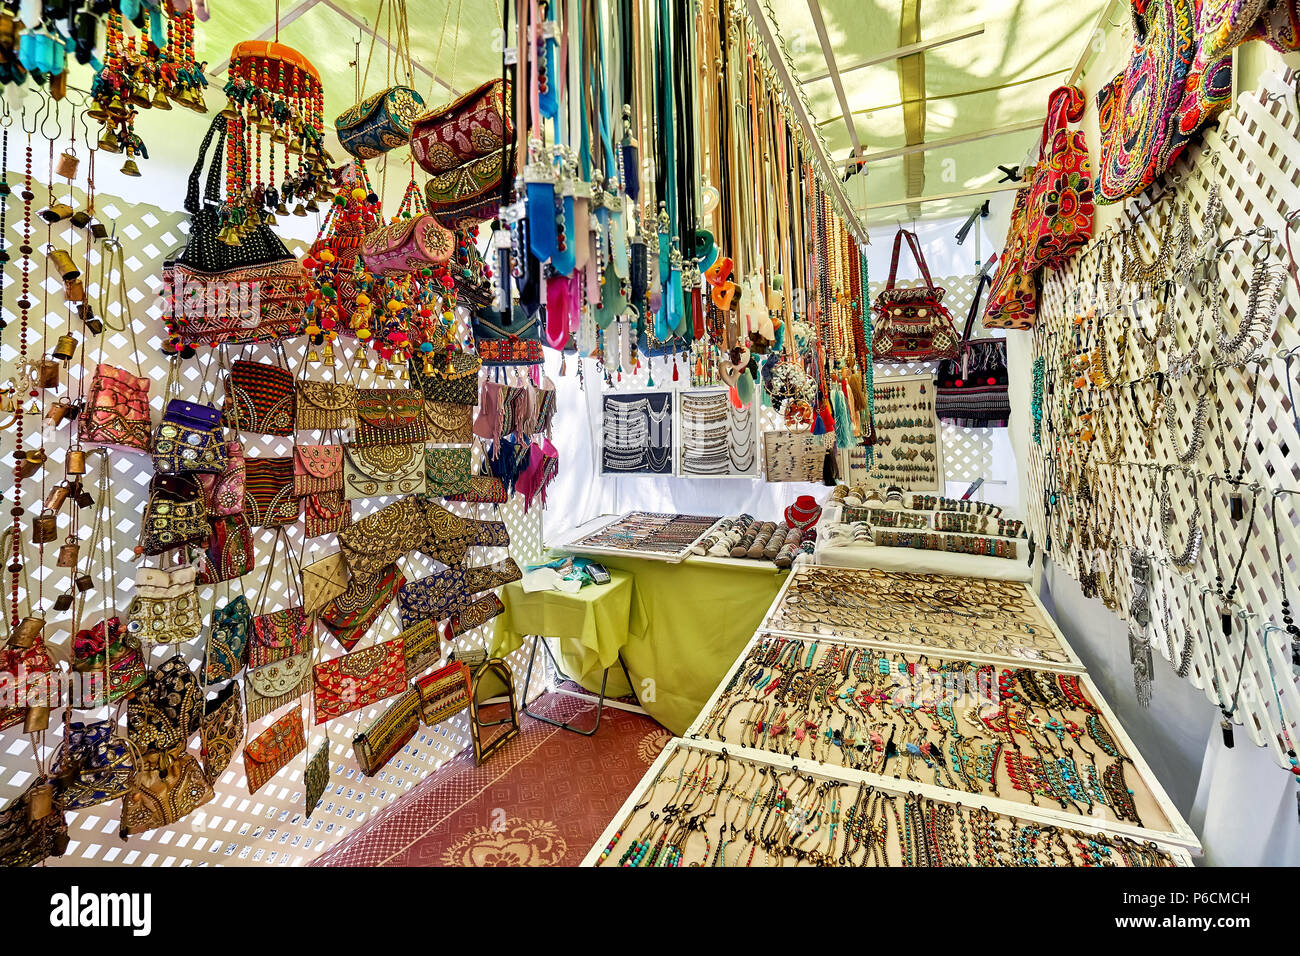 Ibiza Island, Spain - May 2, 2018: Stall full of a handmade fashion accessories, silver jewellery with precious gems and bohemian style of bags in the Stock Photo